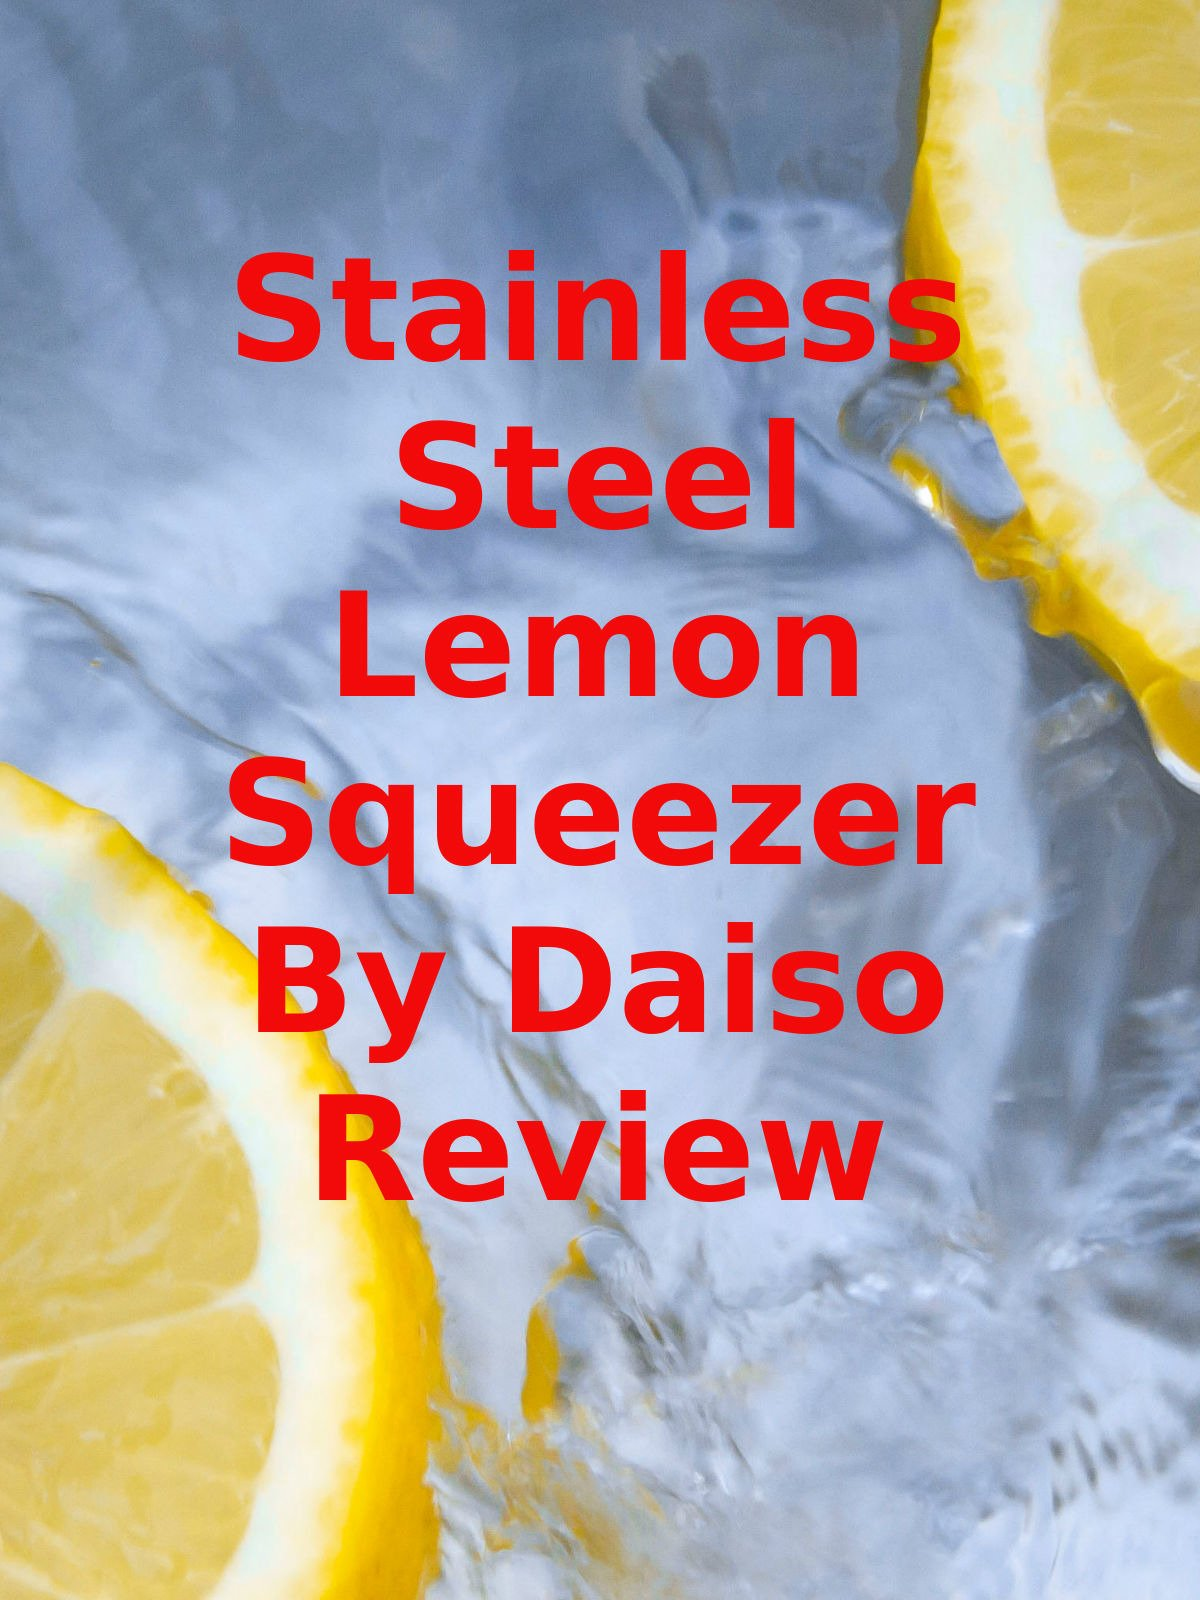 Review: Stainless Steel Lemon Squeezer By Daiso Review